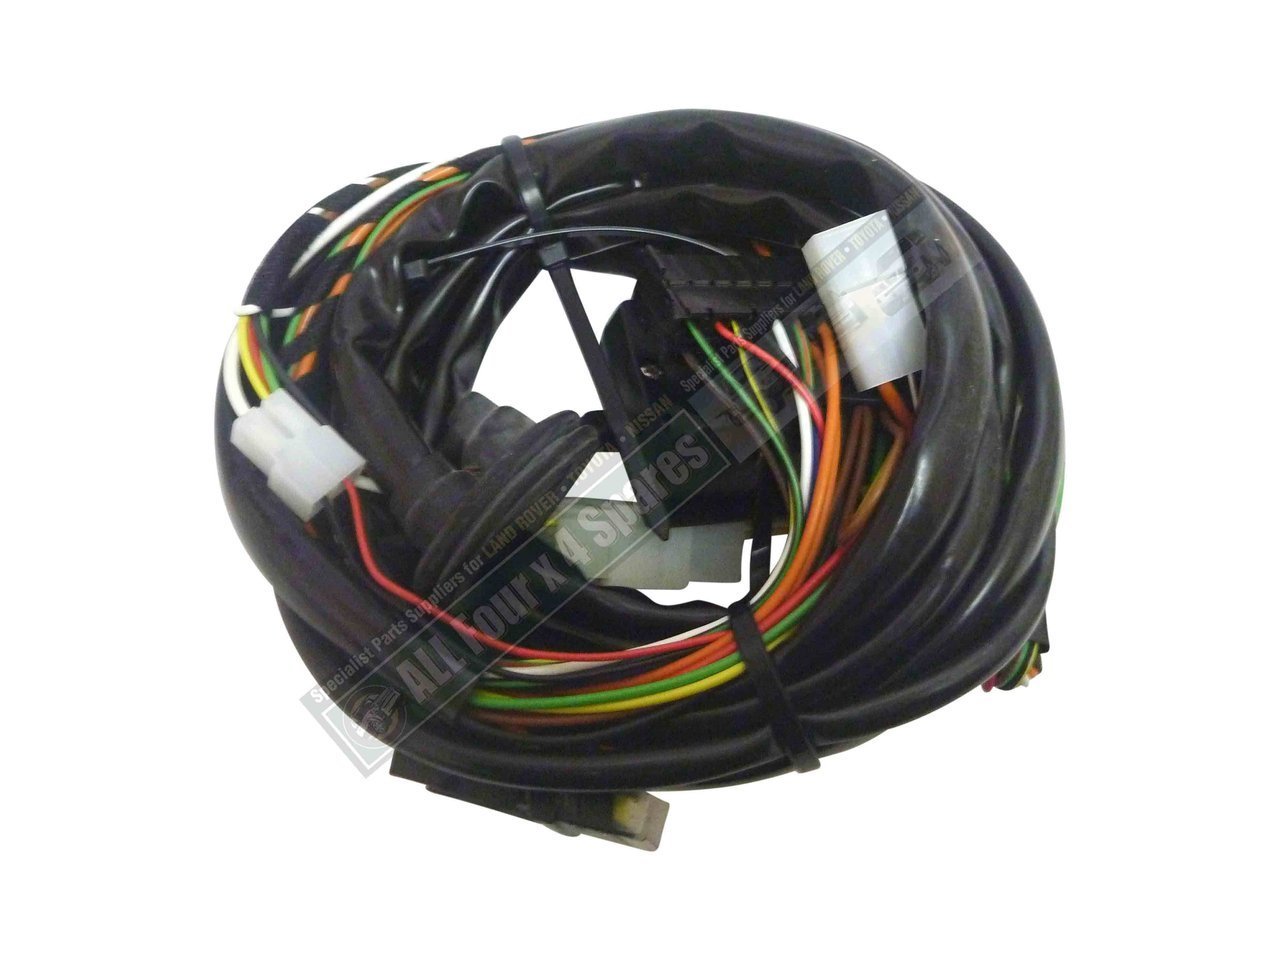 MIL TO 216 B4M__3 milford towbar wiring harness toyota landcruiser 200 2009 on toyota land cruiser trailer wiring harness at creativeand.co